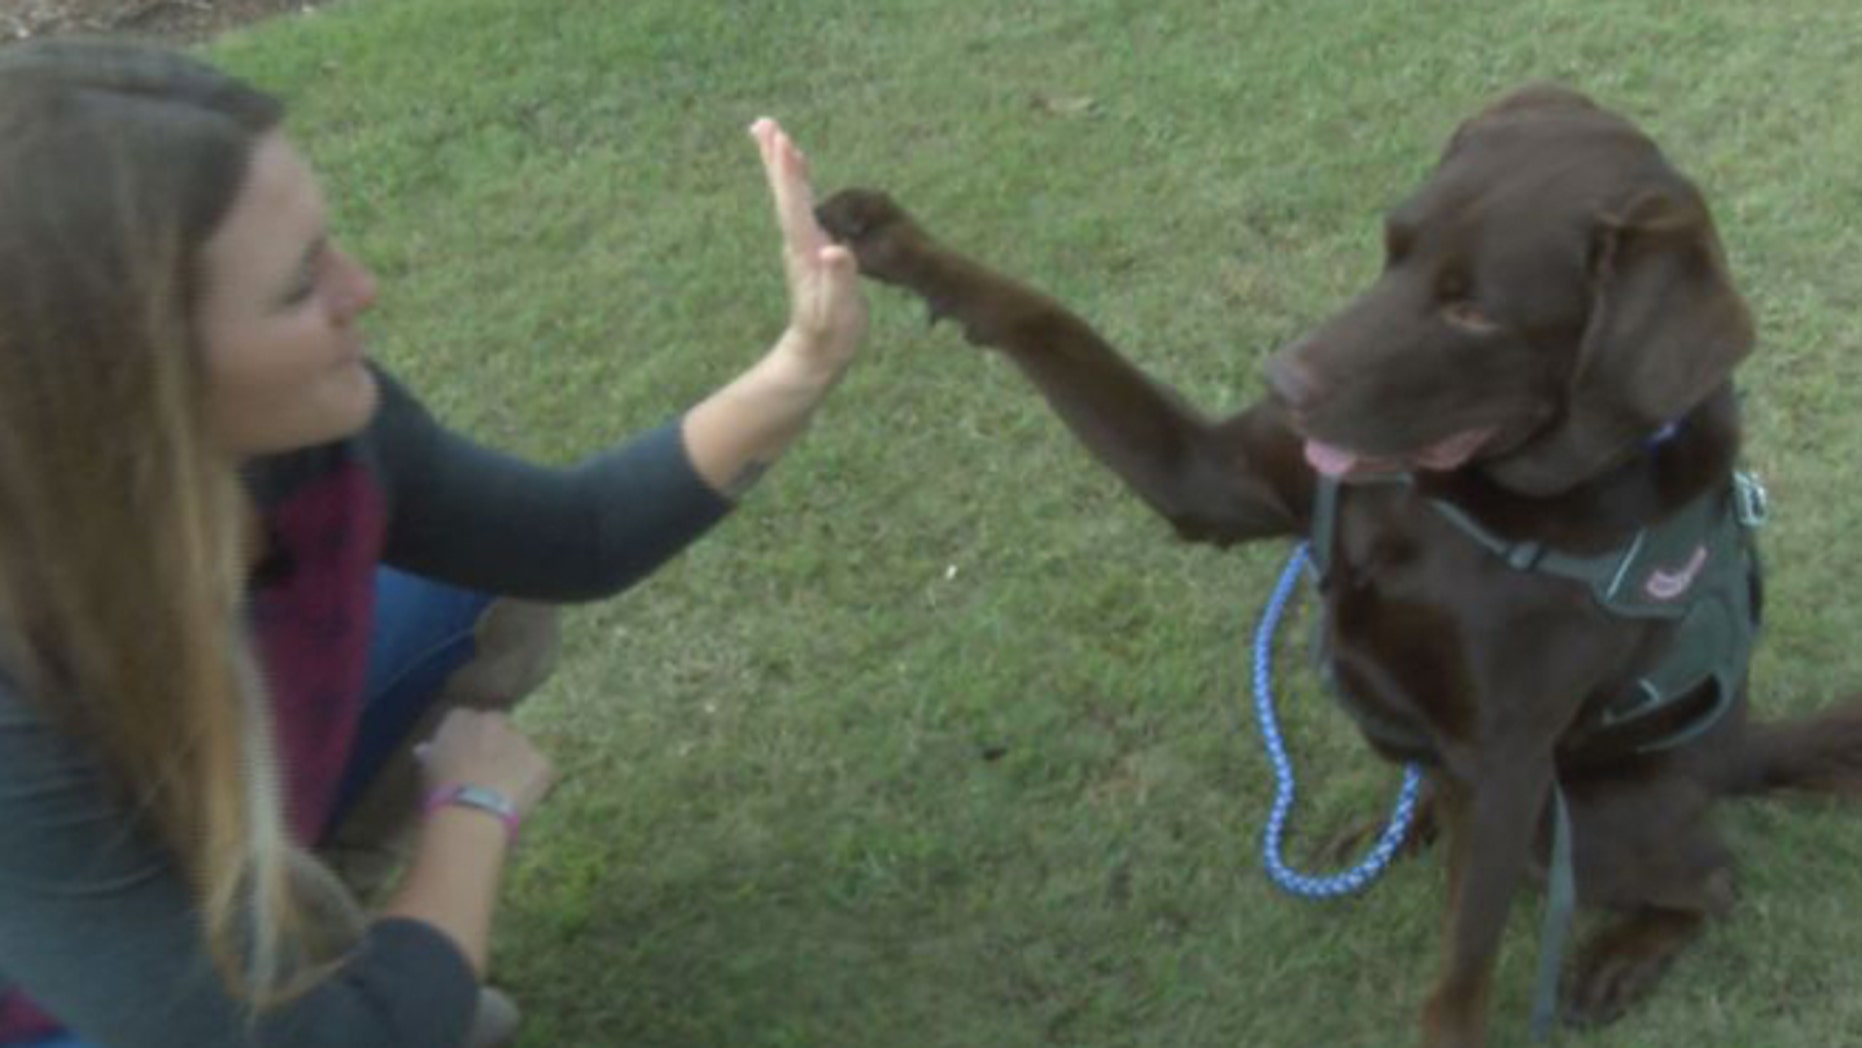 Army vet Lisa Mccombs, of Gulfort, Miss., and her service dog Jake. (WLOX-TV)